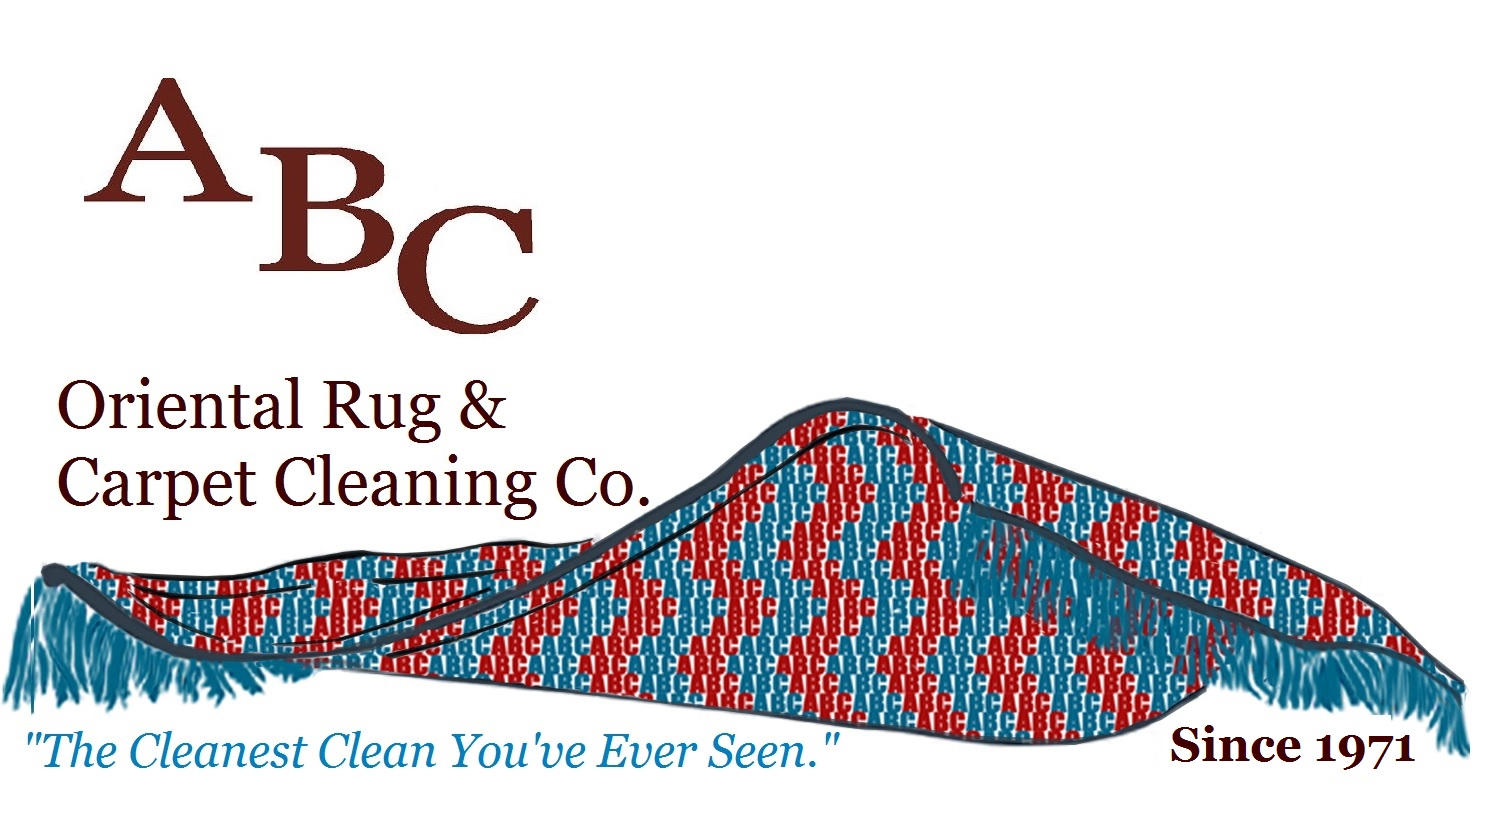 ABC Oriental Rug & Carpet Cleaning Co. Logo/Photo